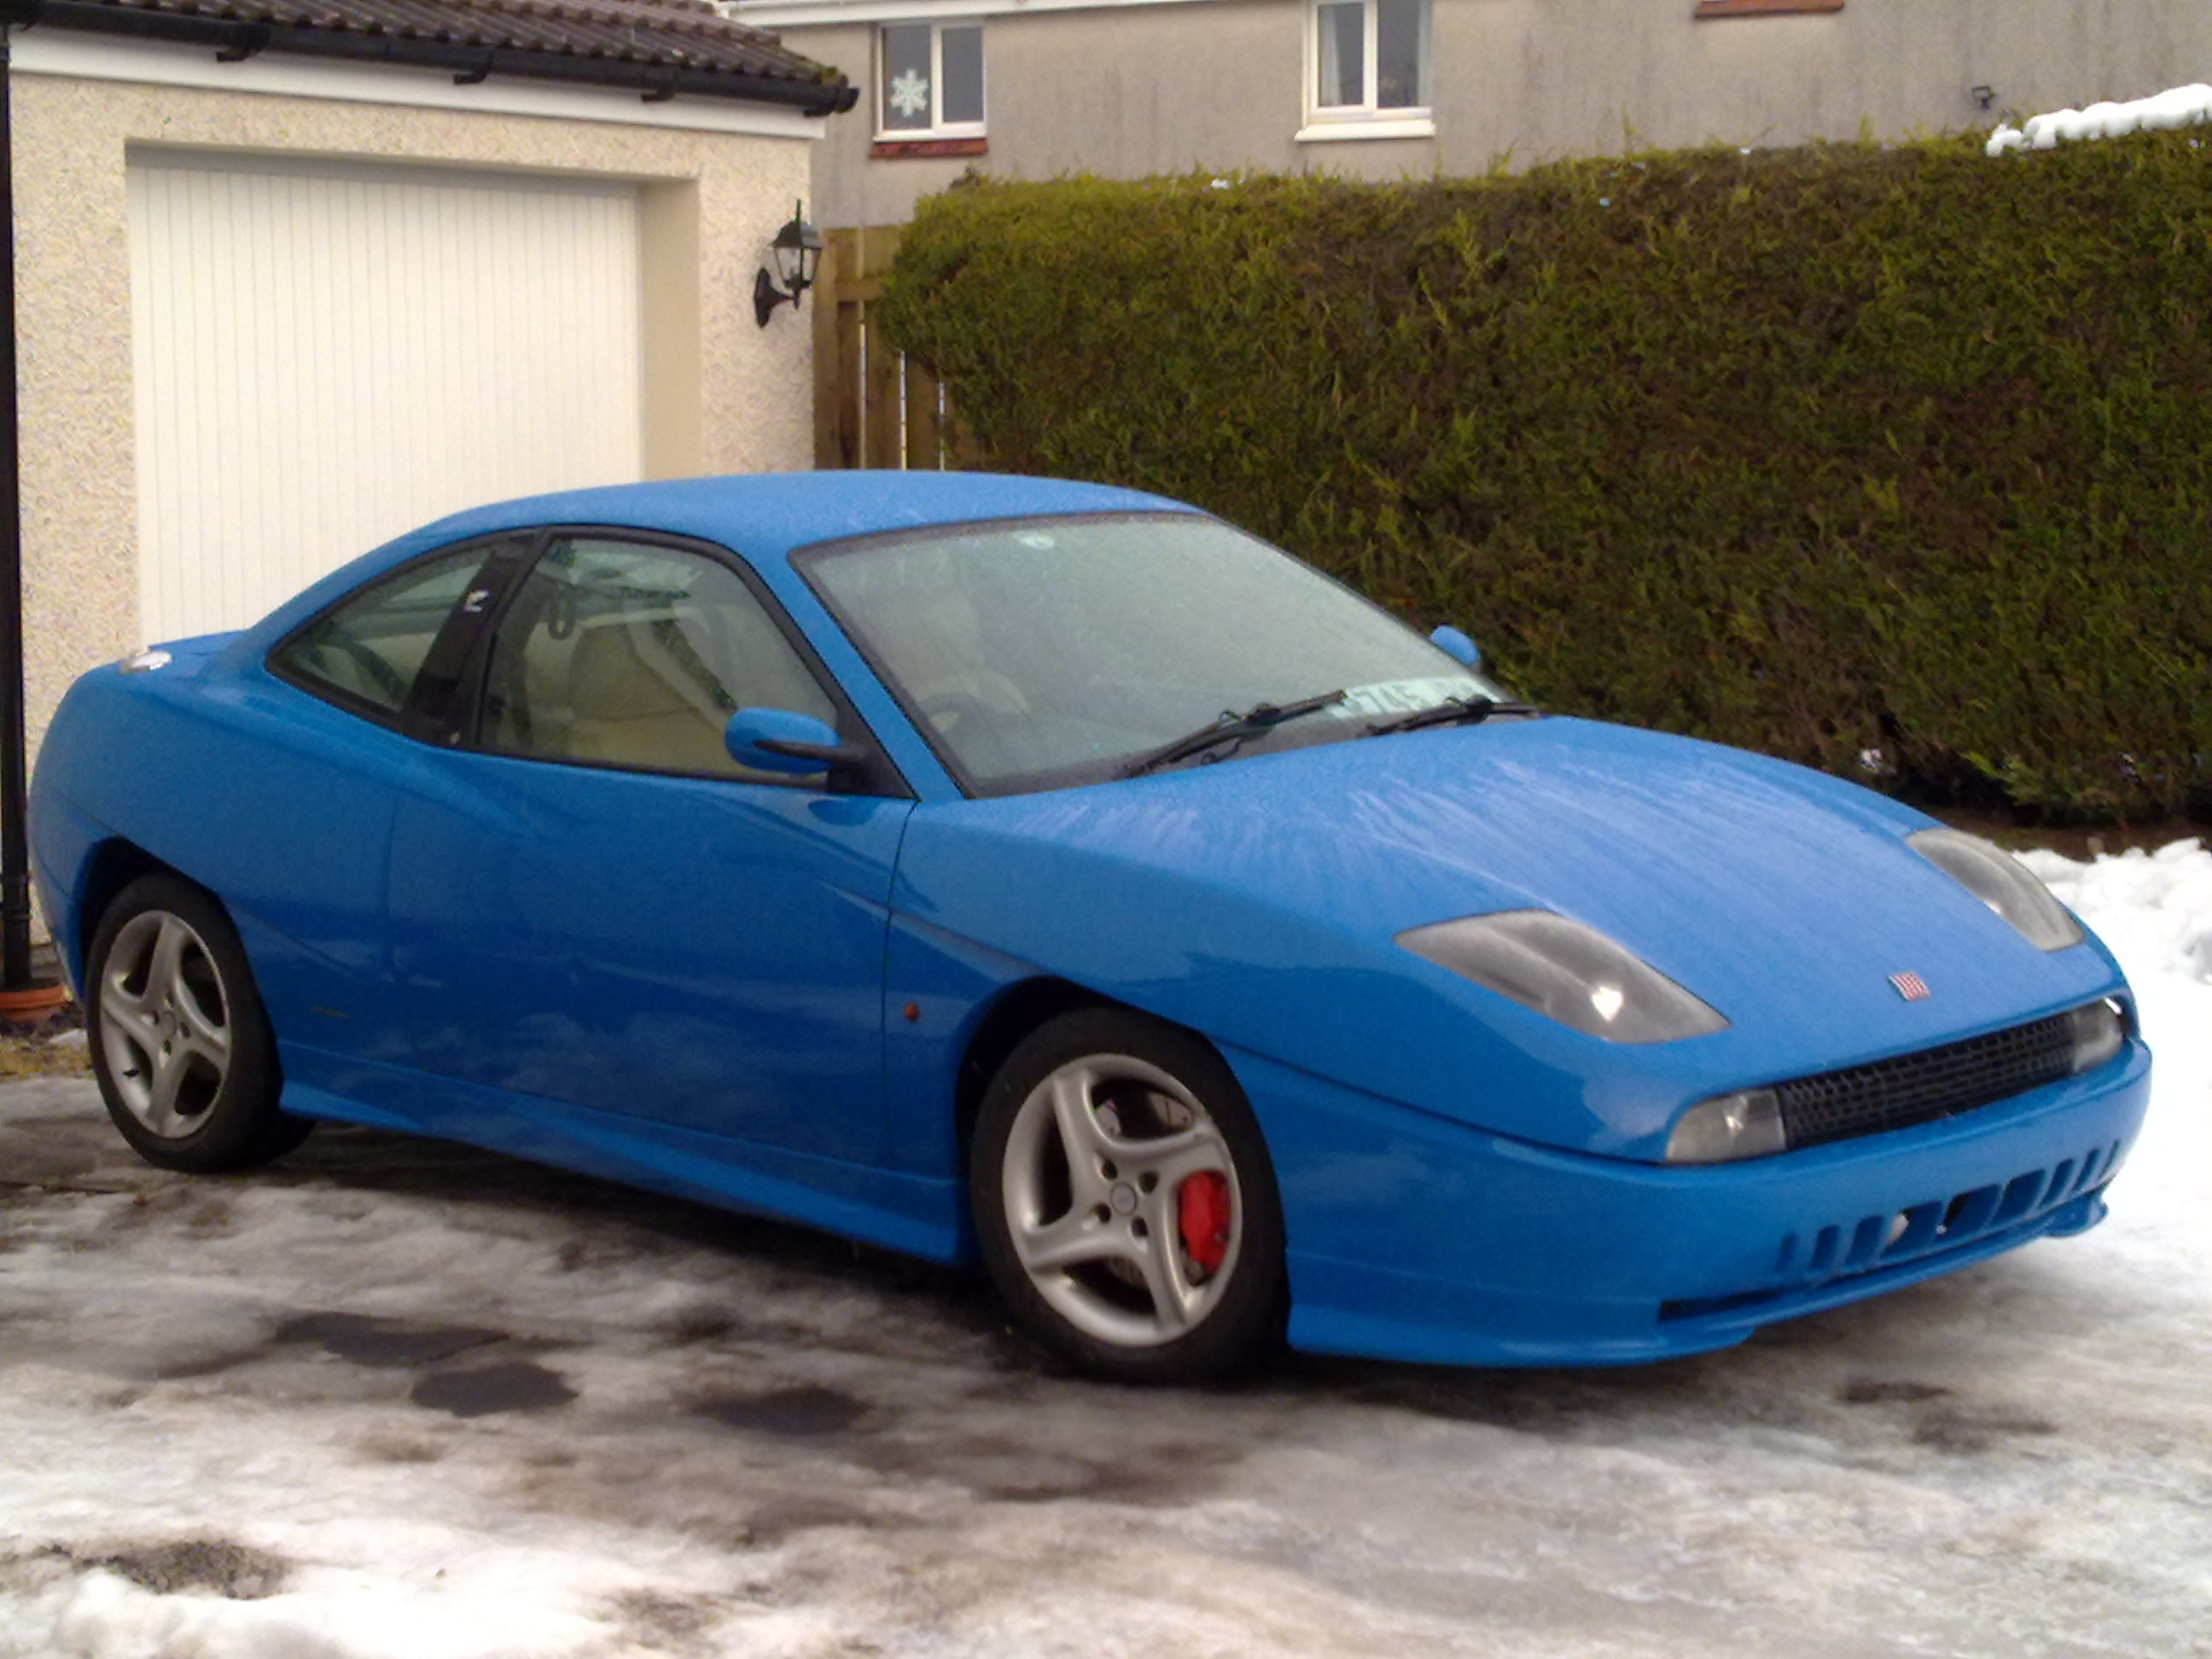 1998 Fiat Coupe #2